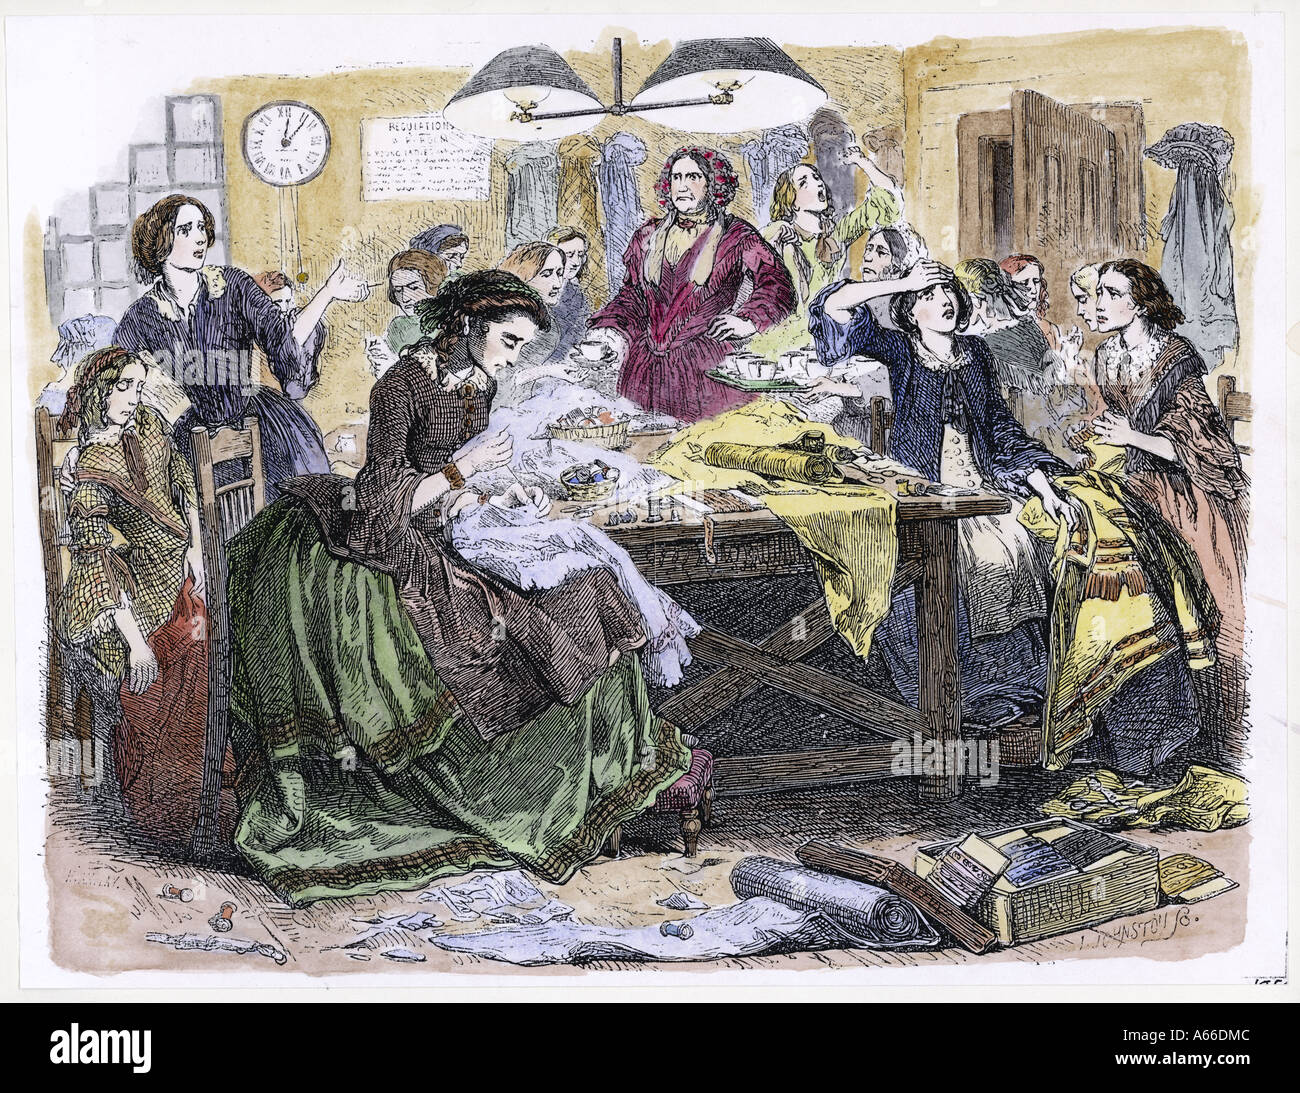 Sweatshop Circa 1870 - Stock Image